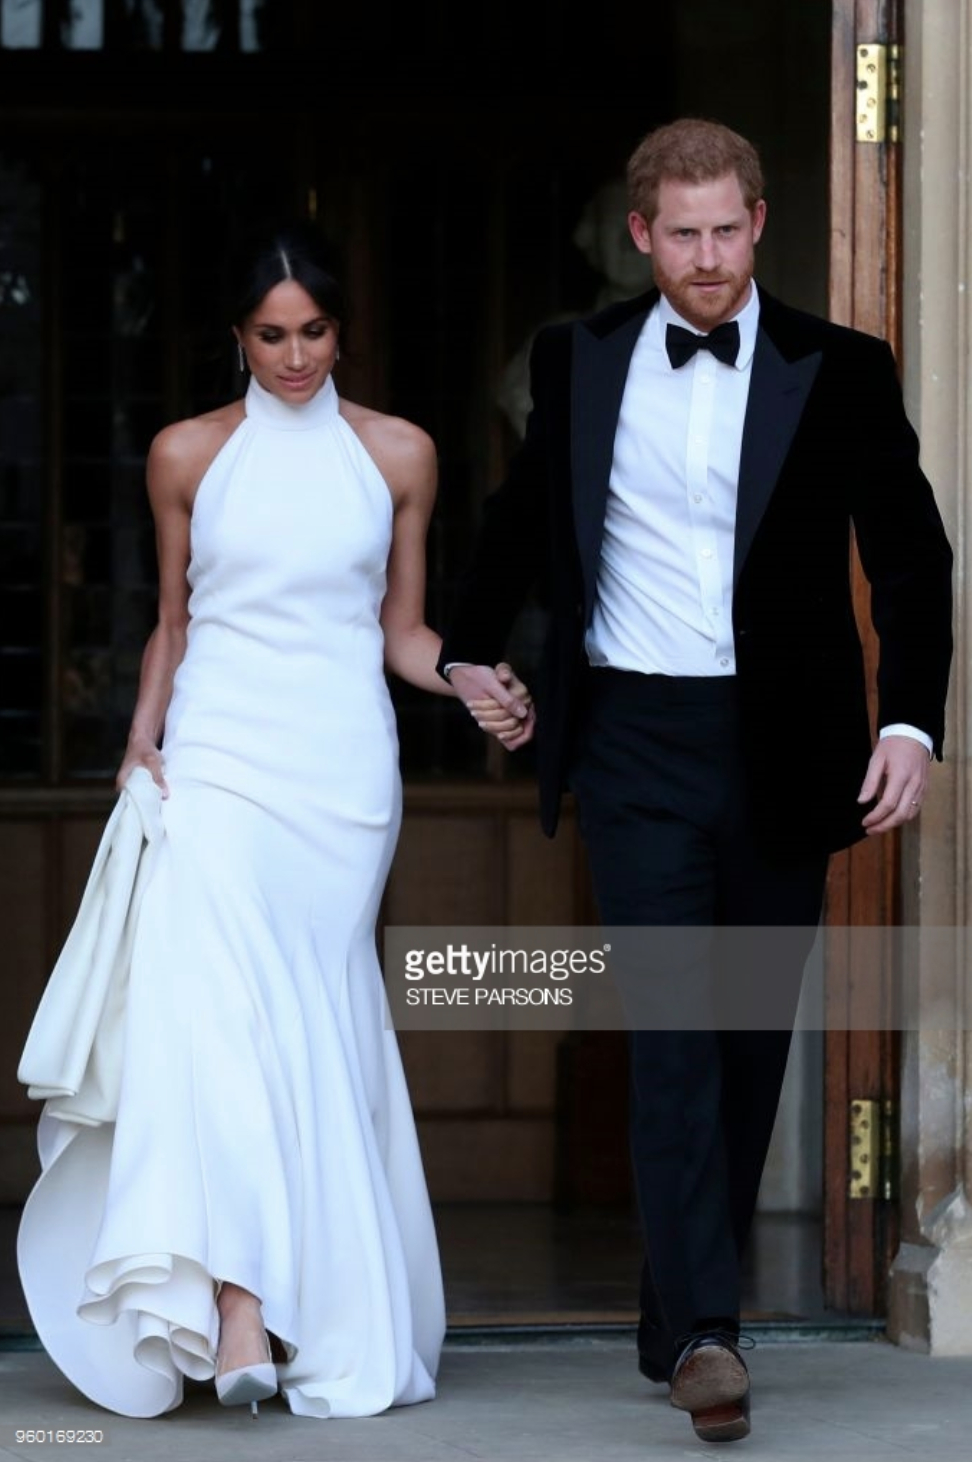 Meghan Markle's Second Look